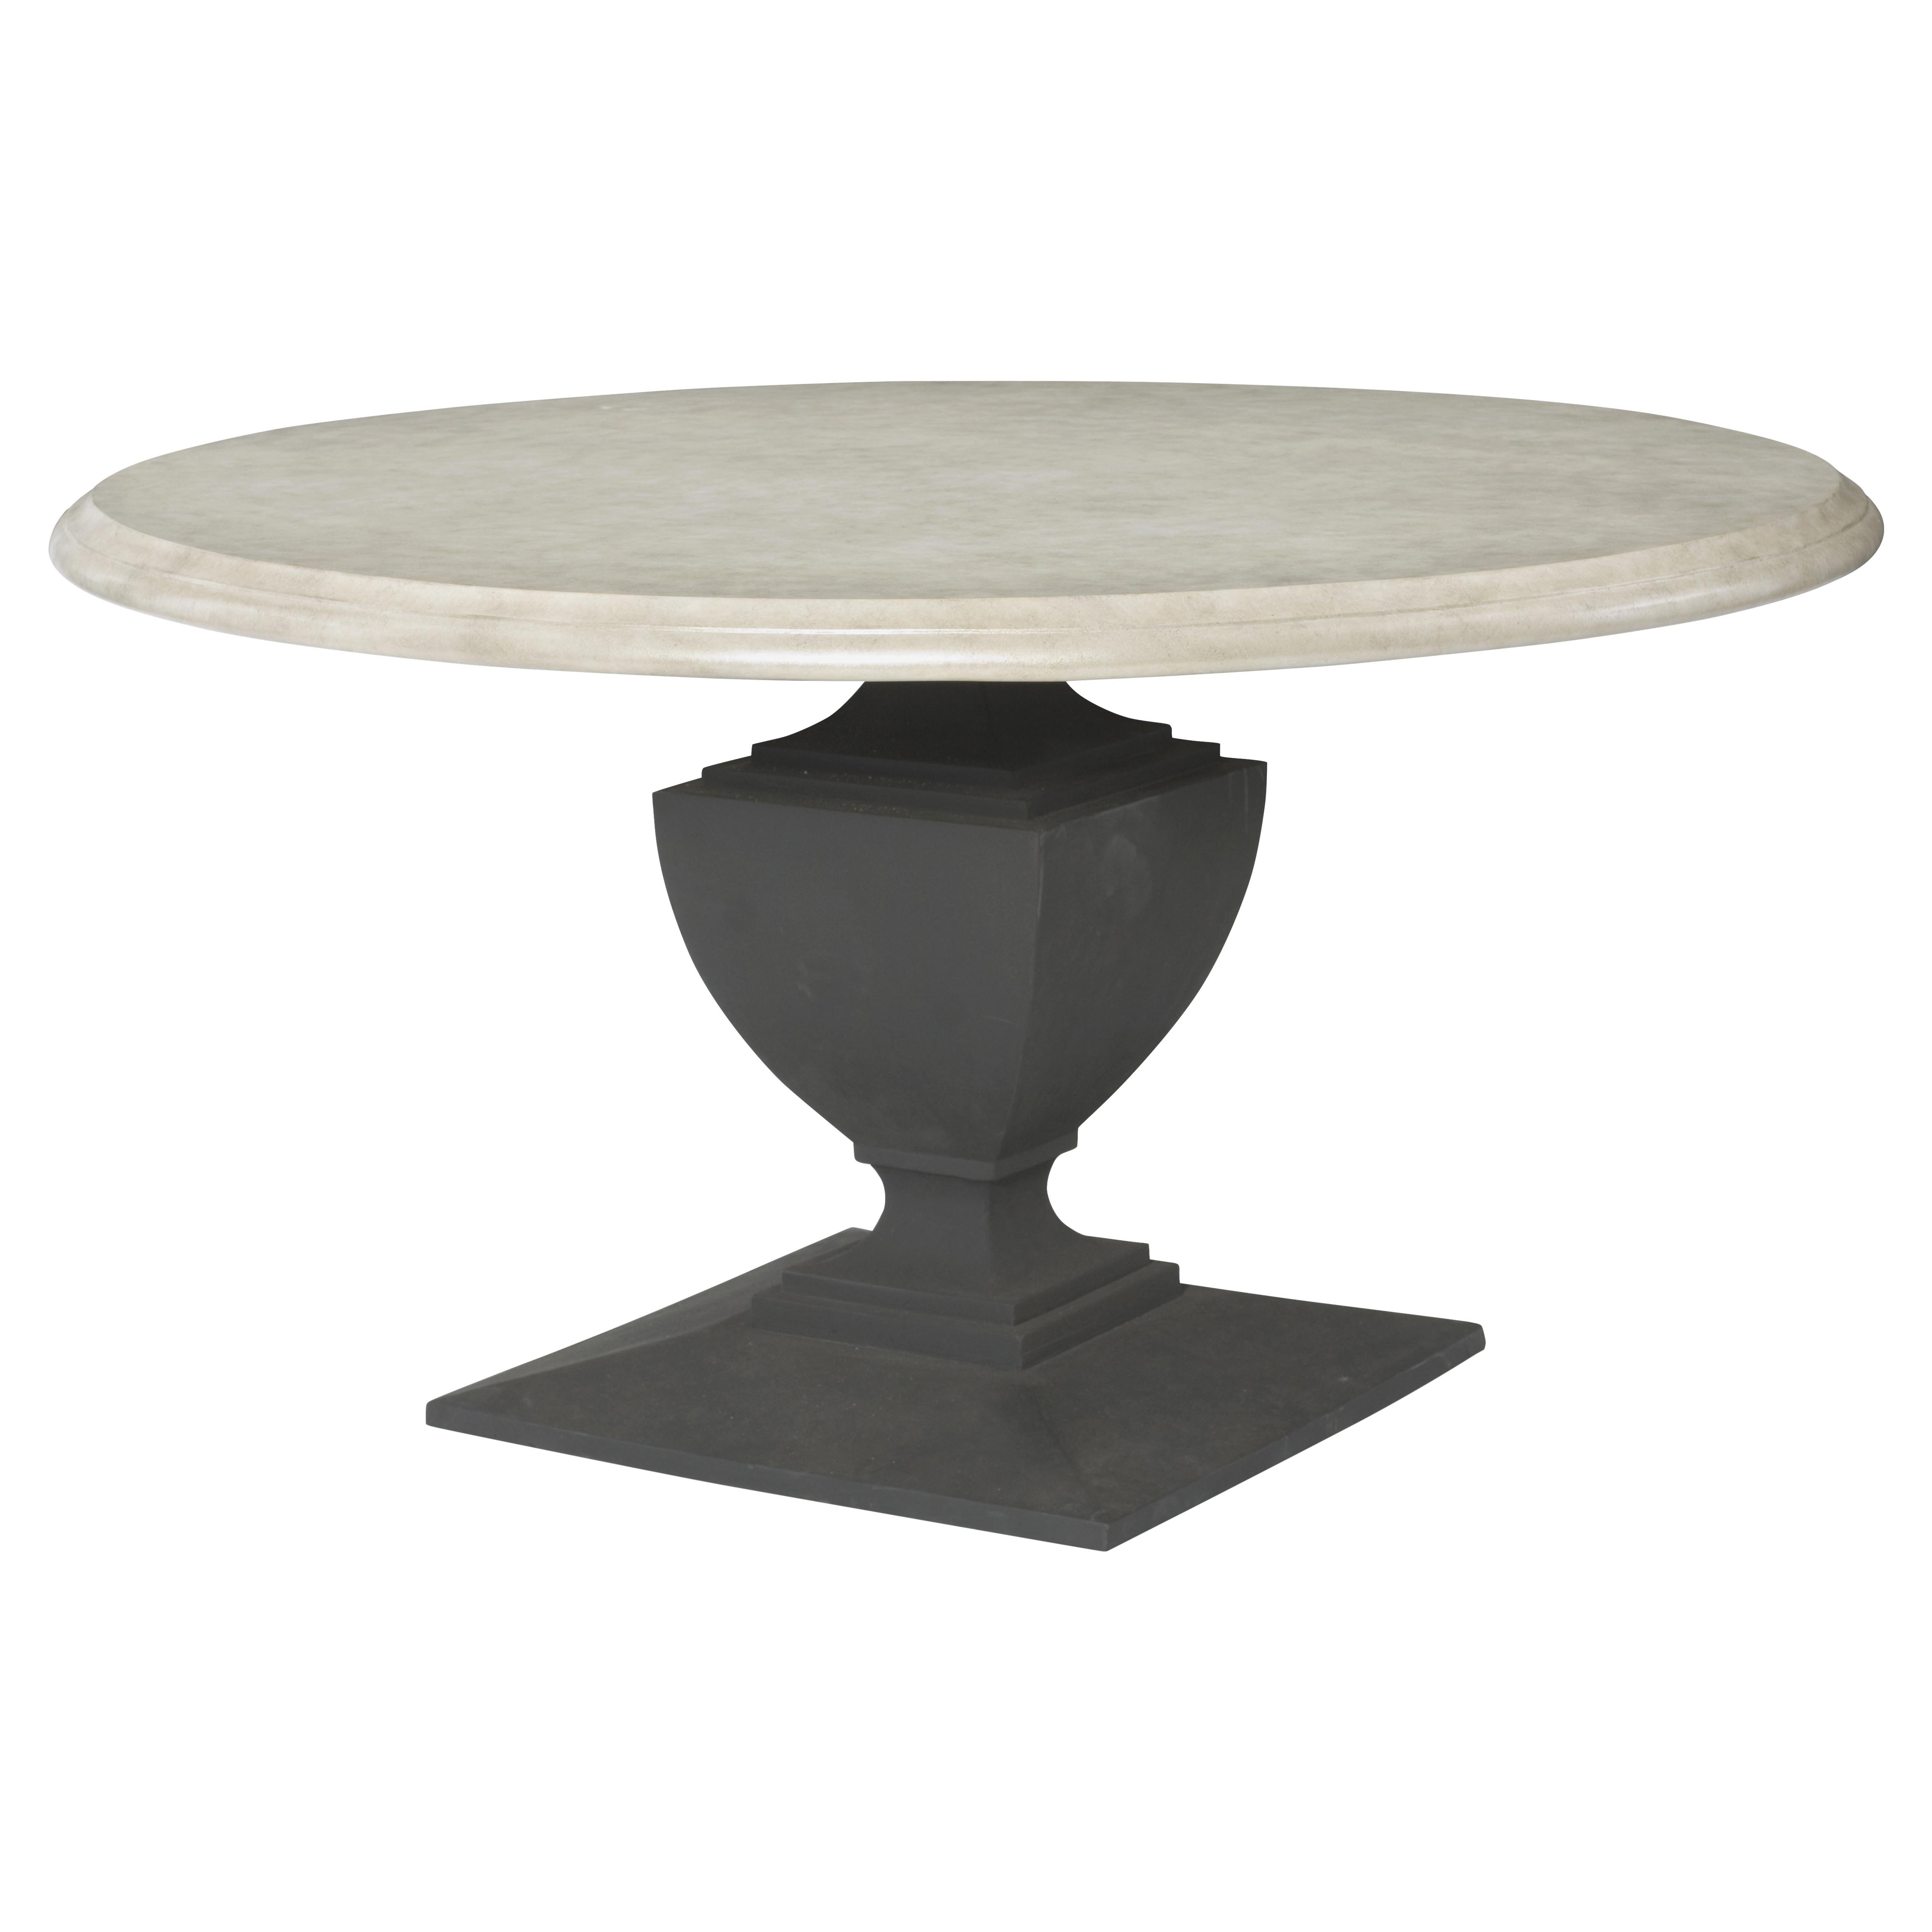 Outdoor Dining Tables Kathy Kuo Home - Concrete pedestal table base